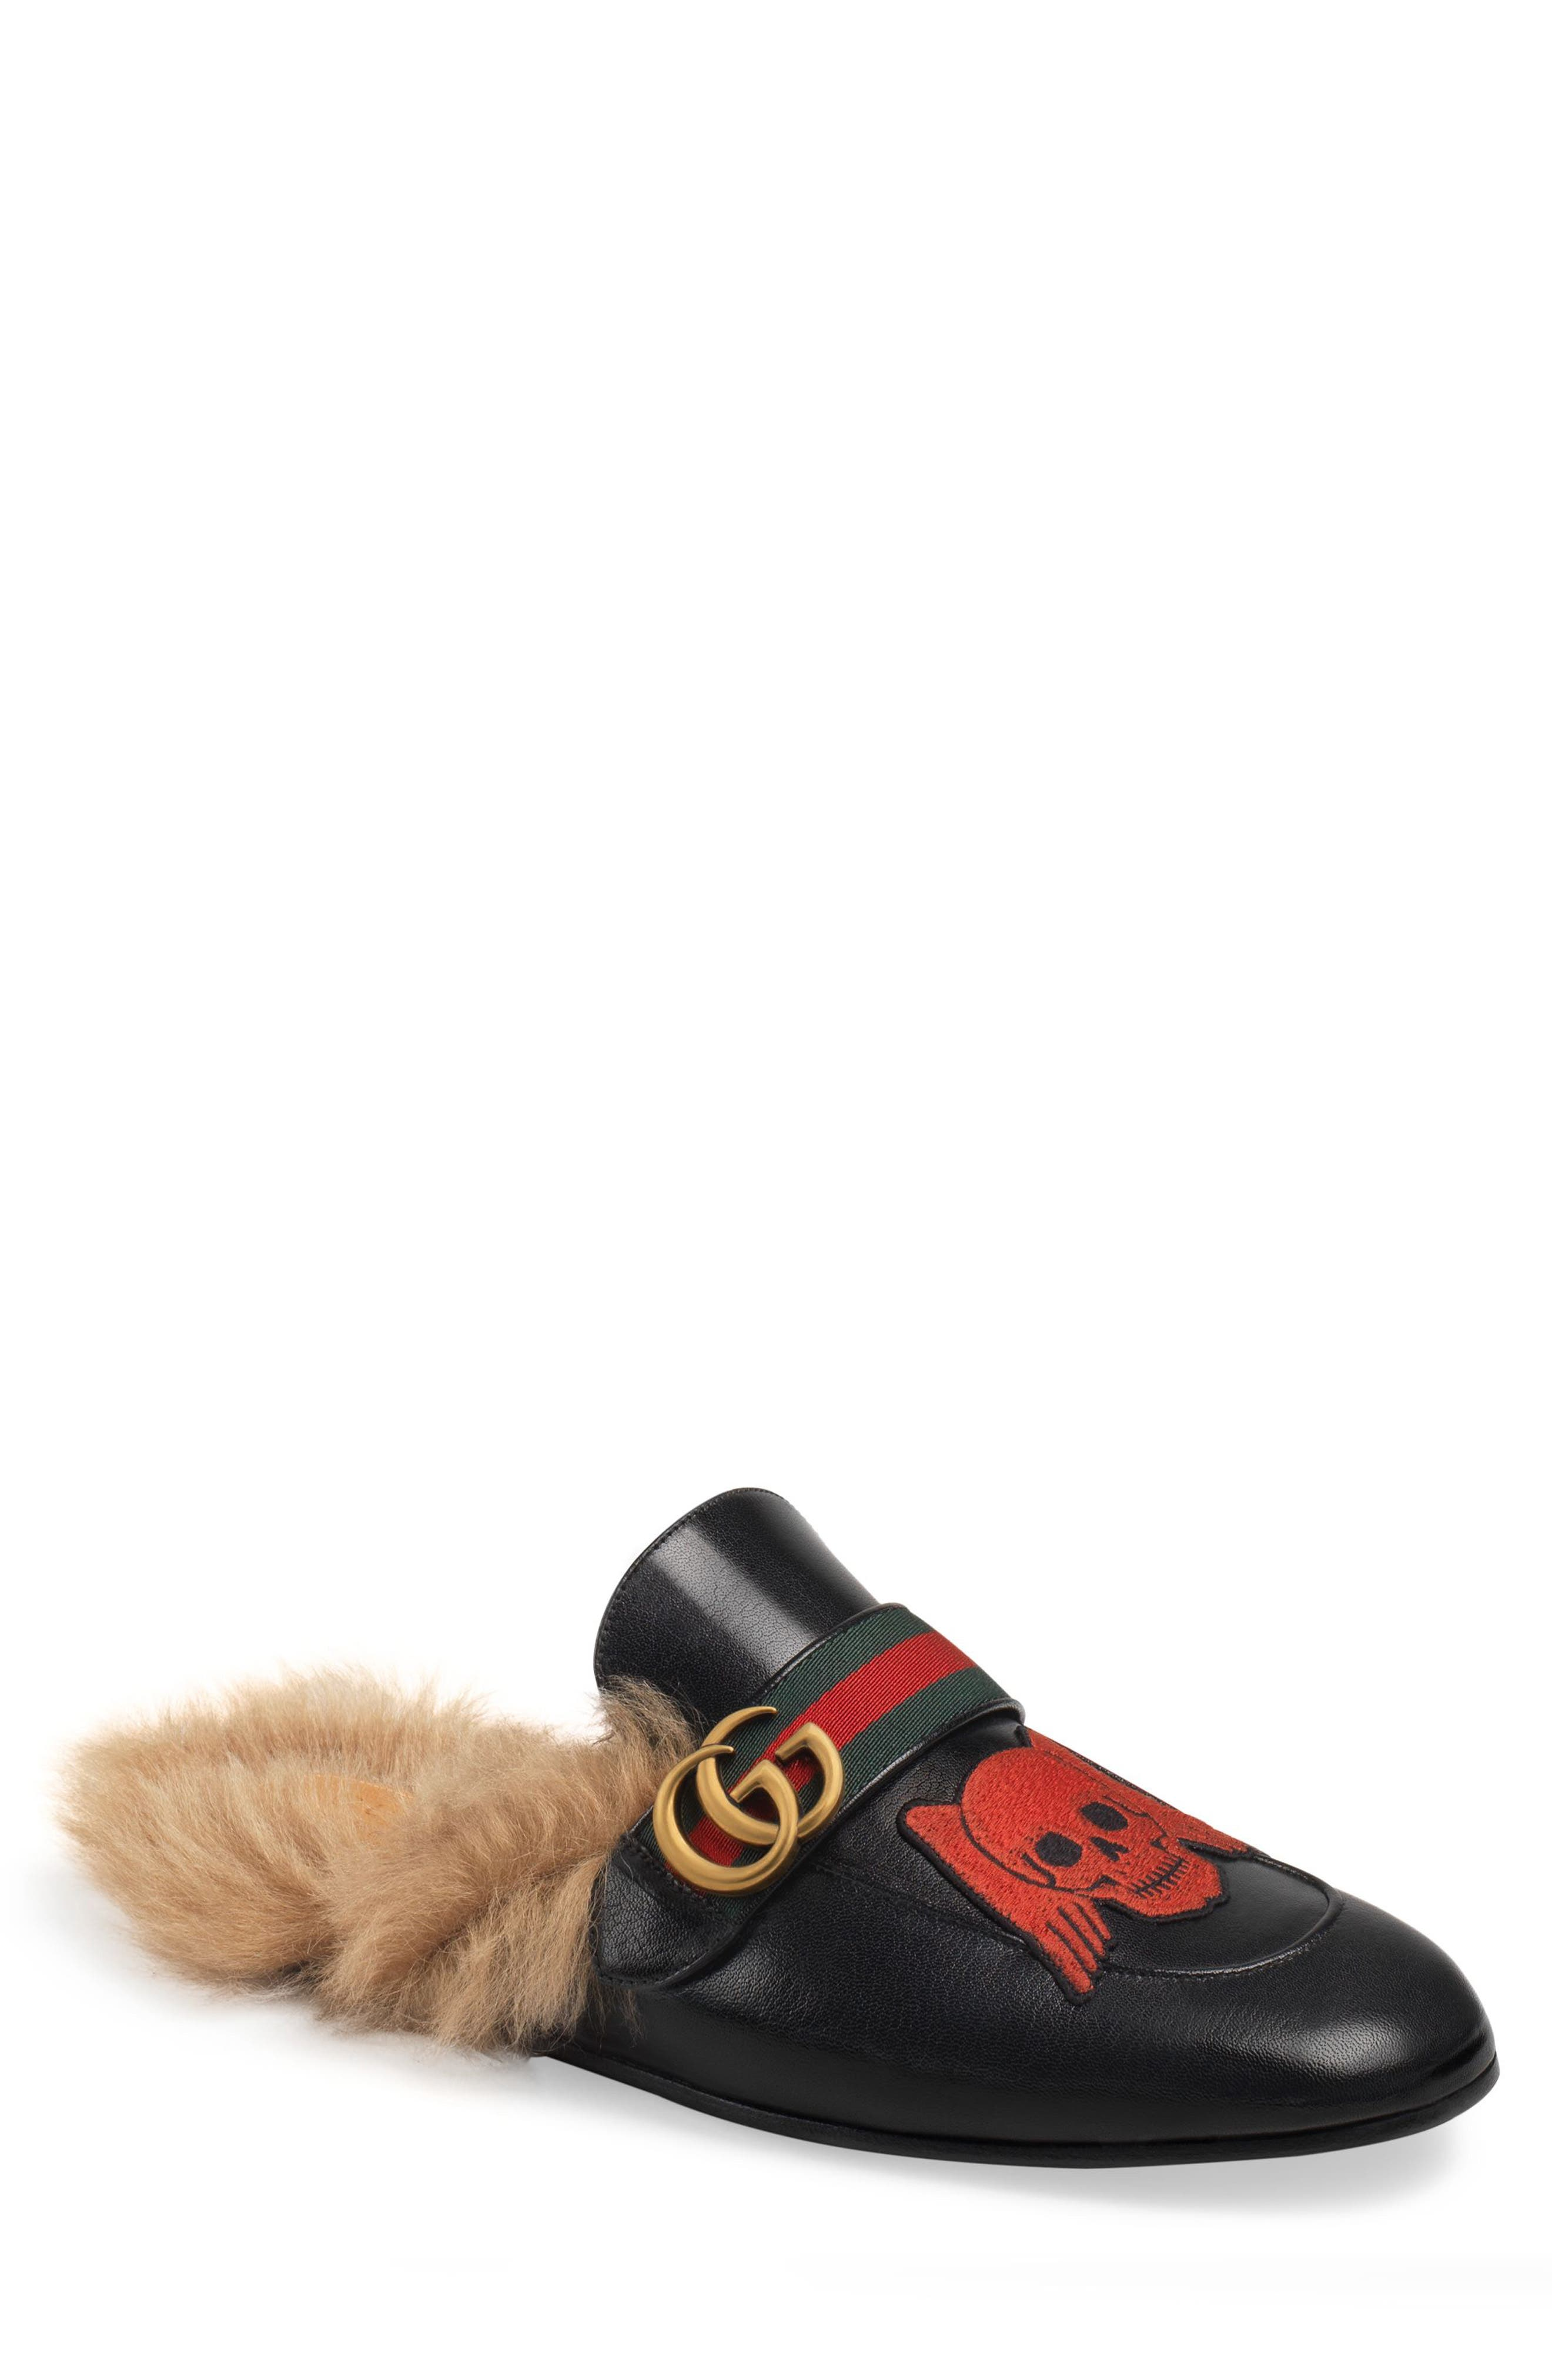 GUCCI, Princetown Double G Loafer Mule with Genuine Shearling, Main thumbnail 1, color, BLACK